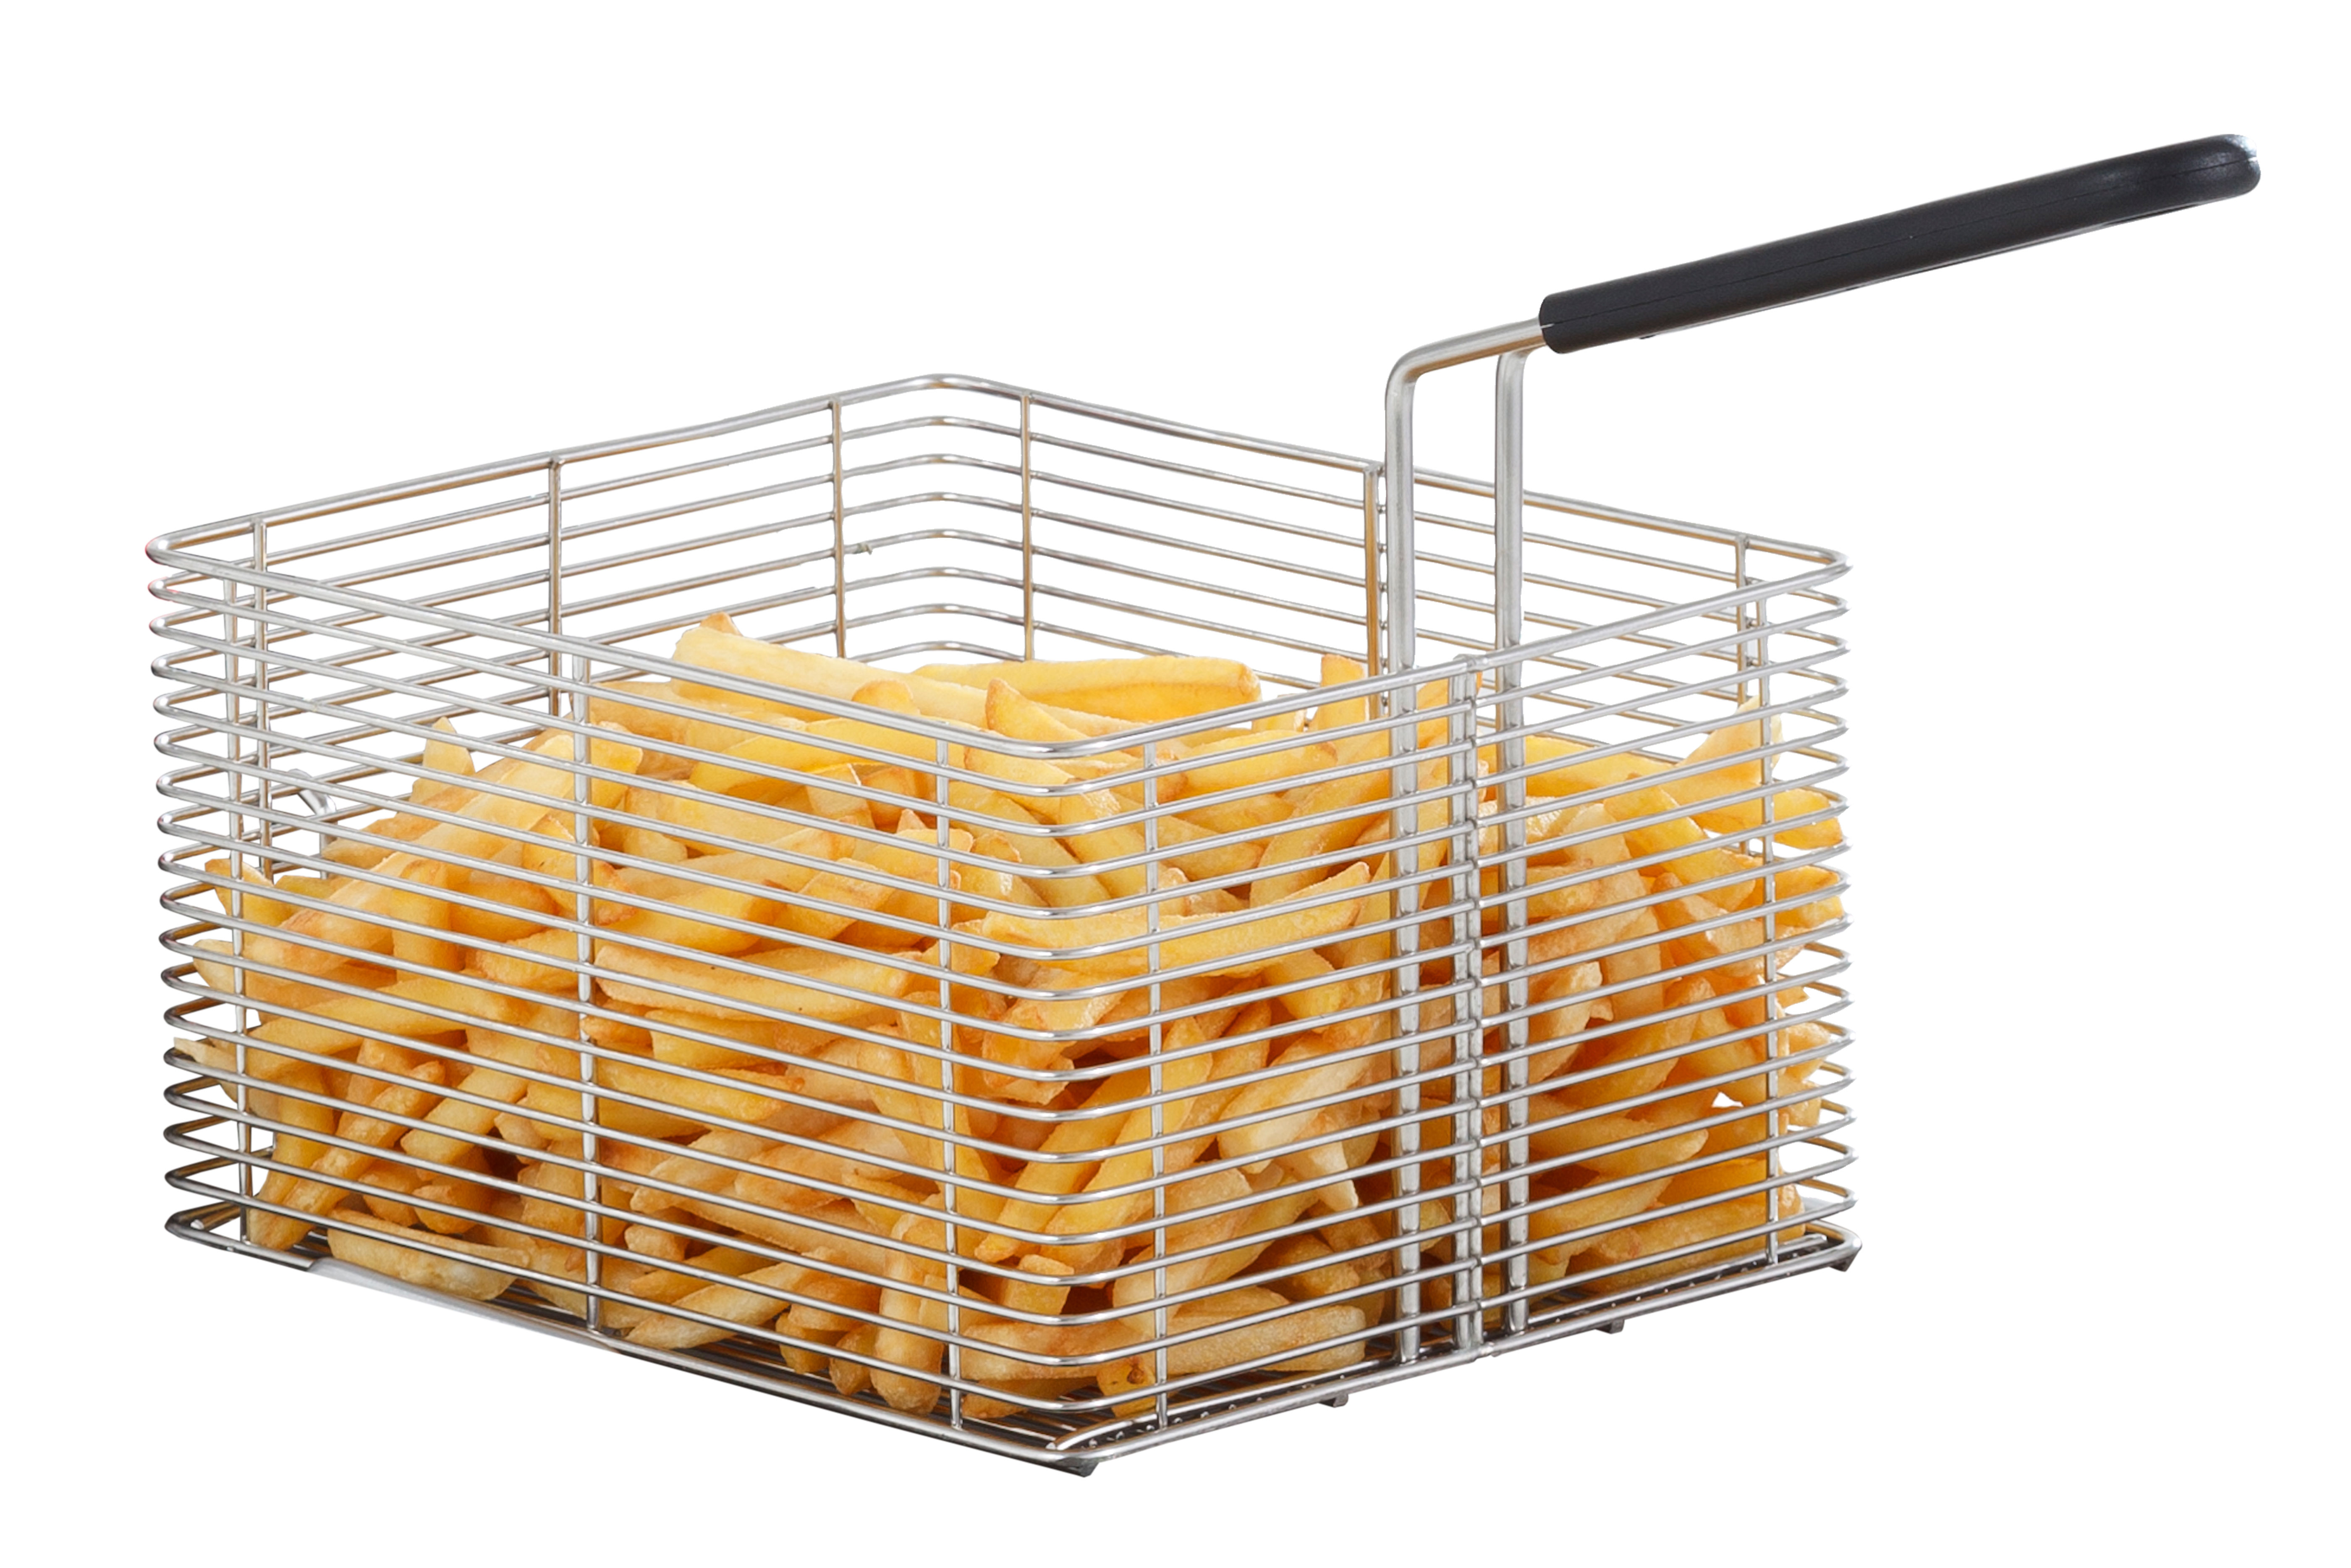 FISH FRYER BASKET - SPARE BASKET - S/STEEL